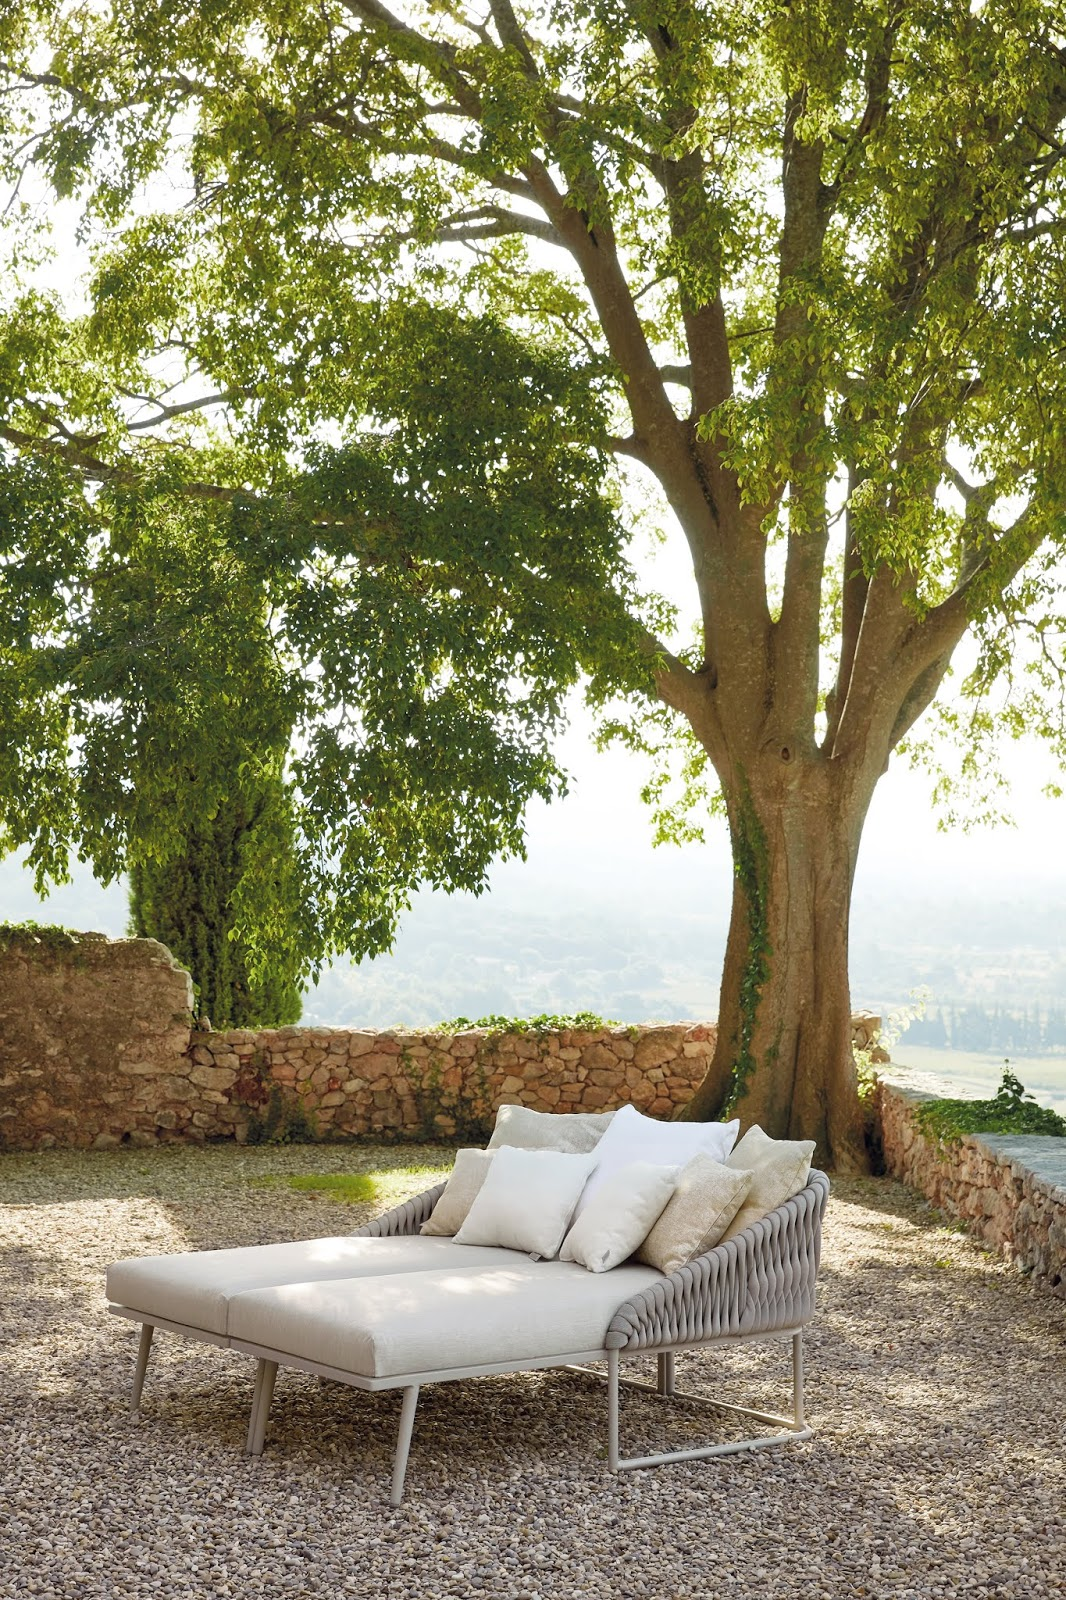 ilaria fatone - slow-living outdoor - sifas basket